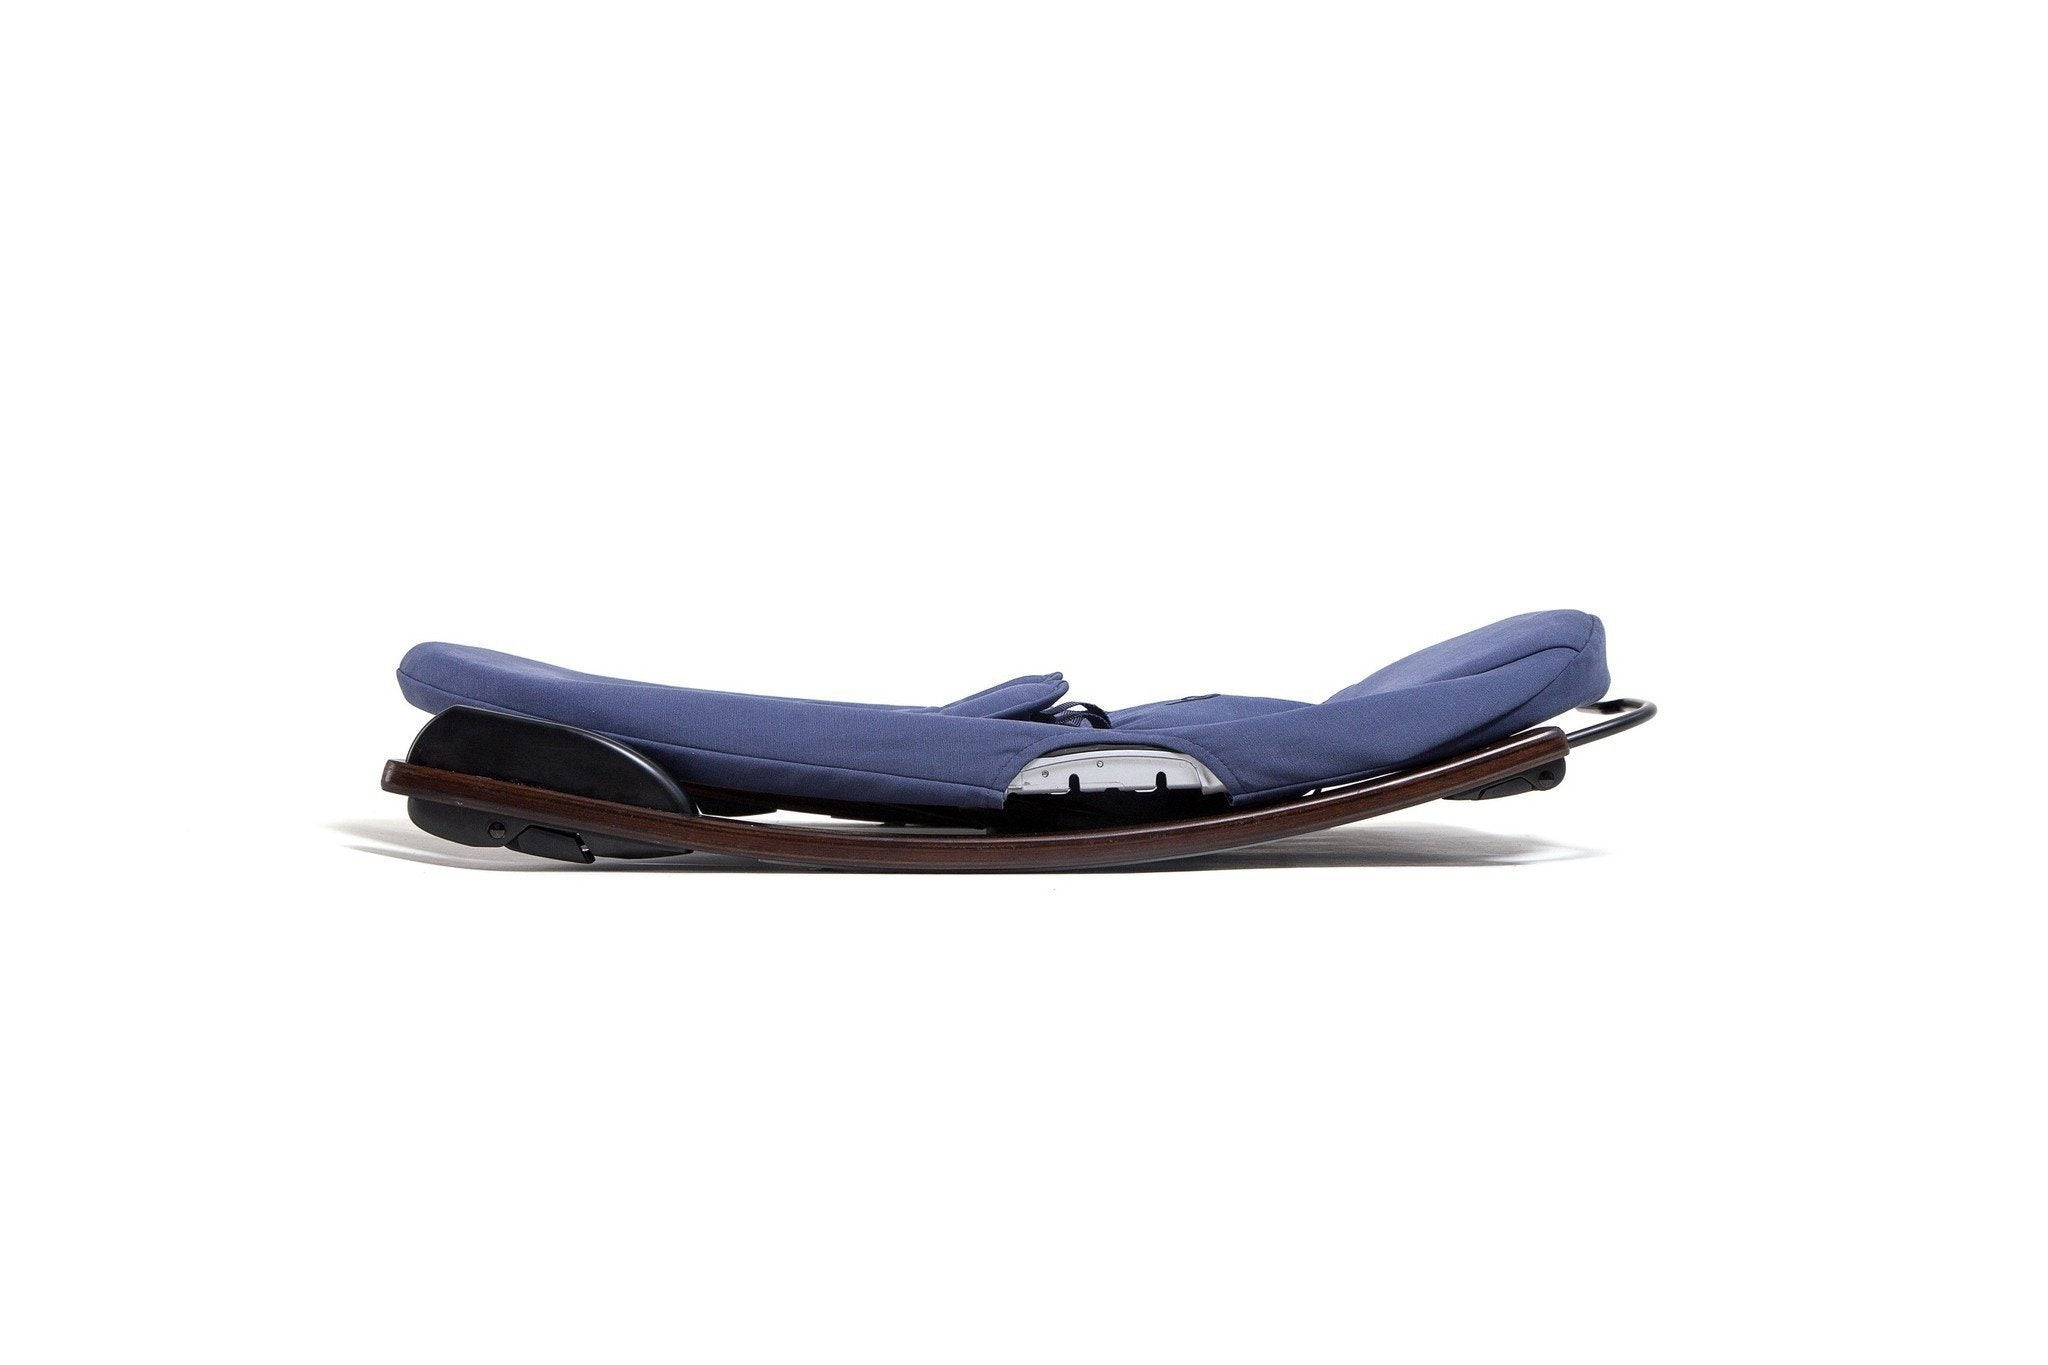 Bloom Coco Go 3-in-1 Lounger